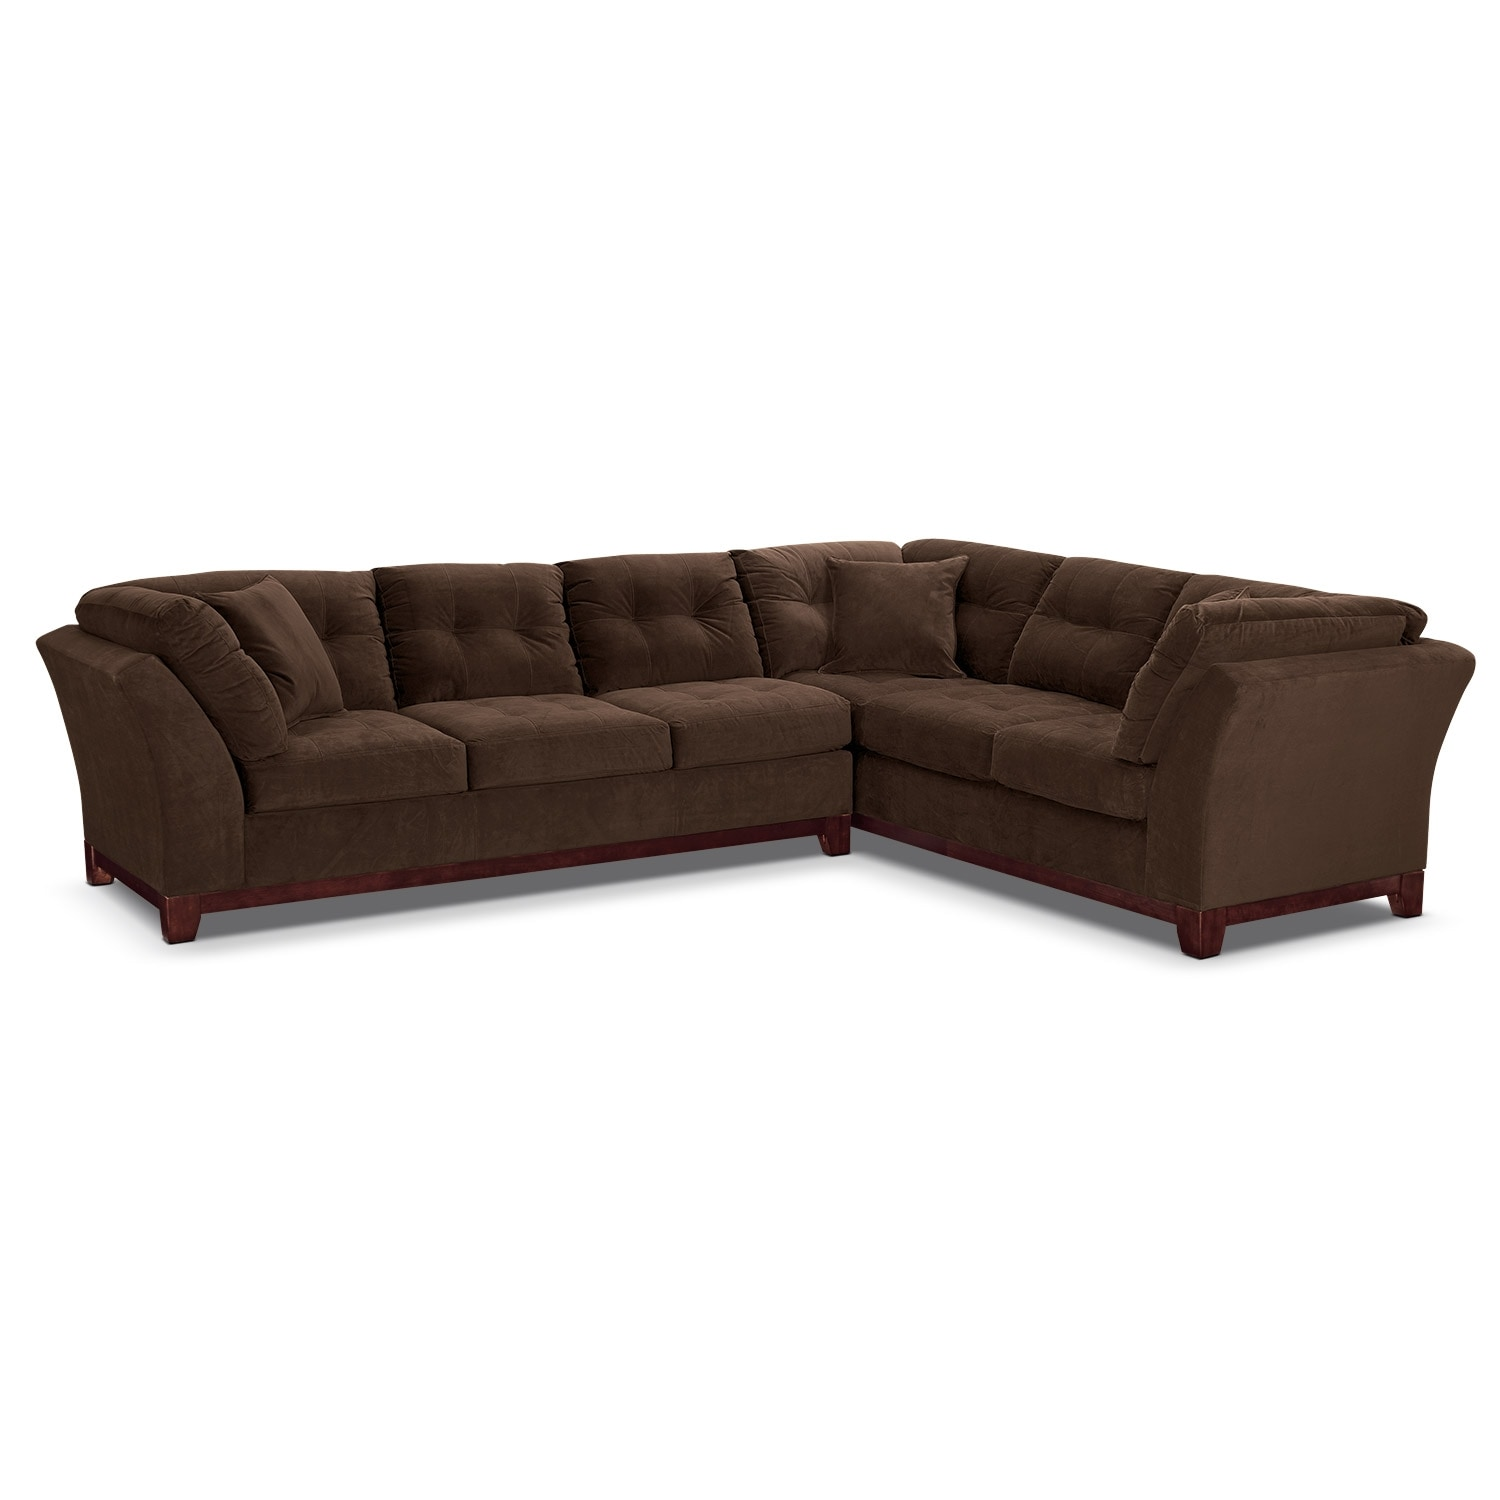 Living Room Furniture - Solace Chocolate II 2 Pc. Sectional (Reverse)